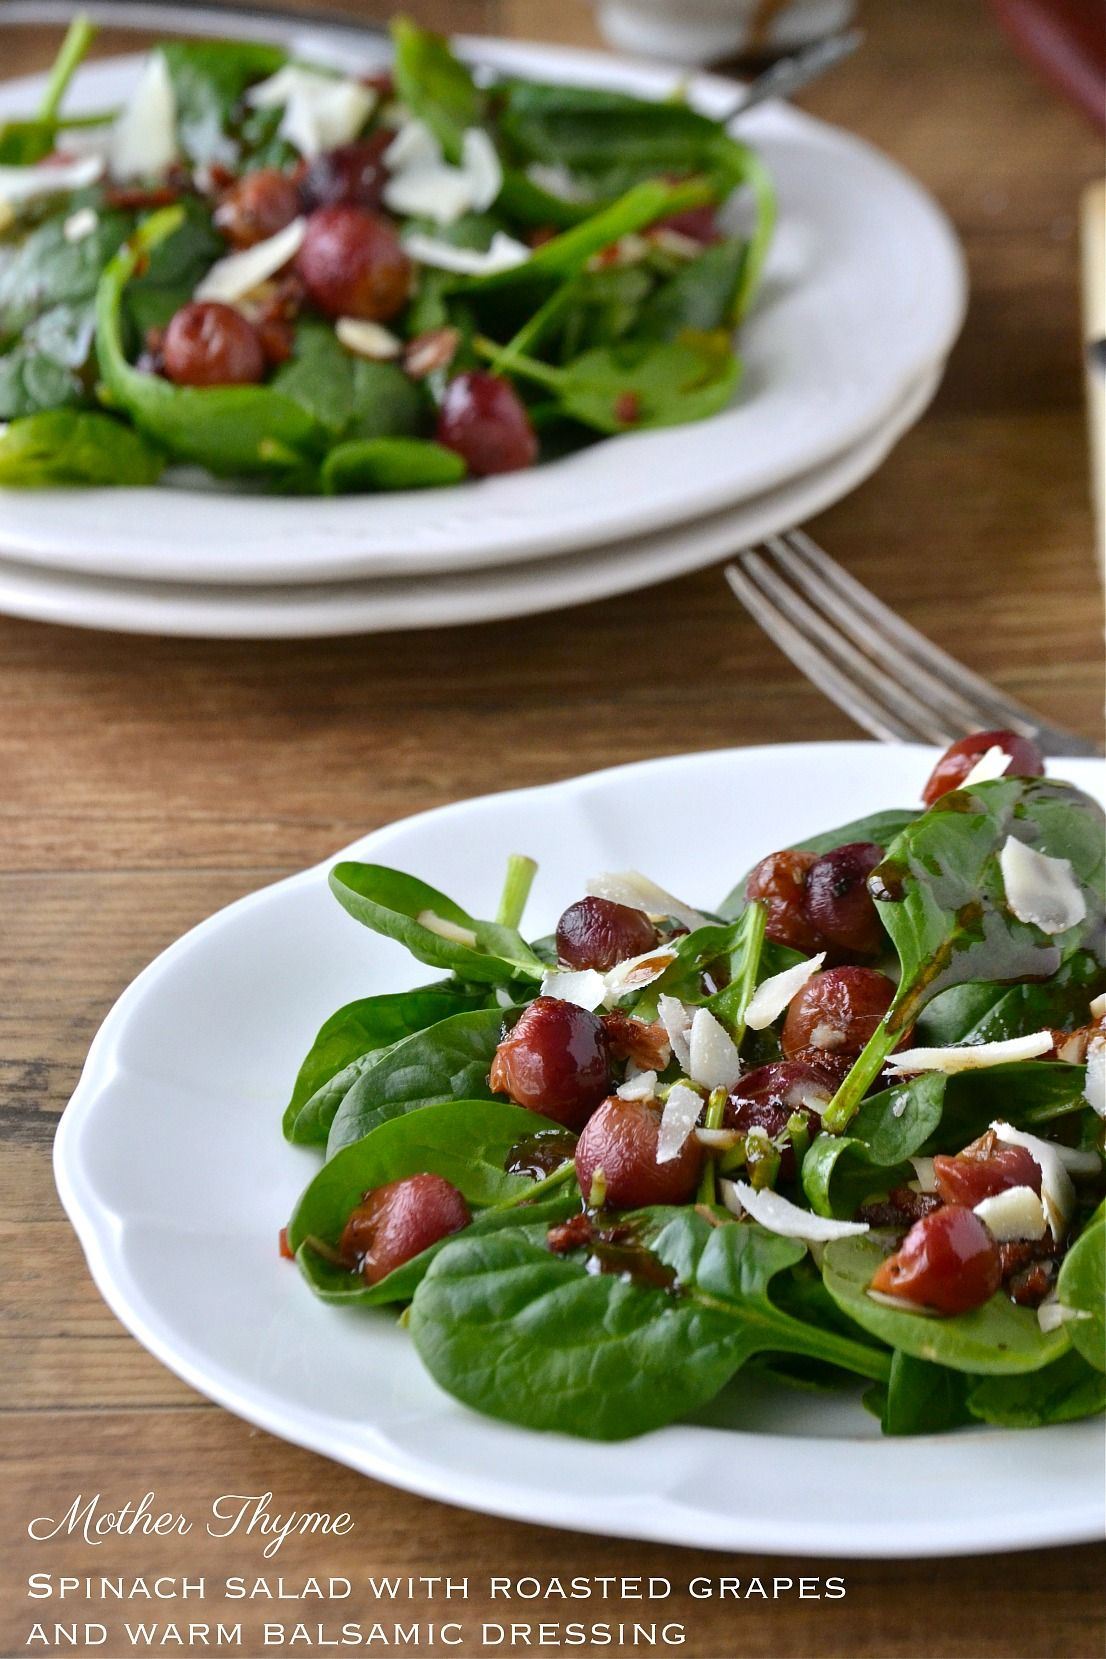 Spinach Salad with Roasted Grapes and Warm Balsamic Dressing | www.motherthyme.com